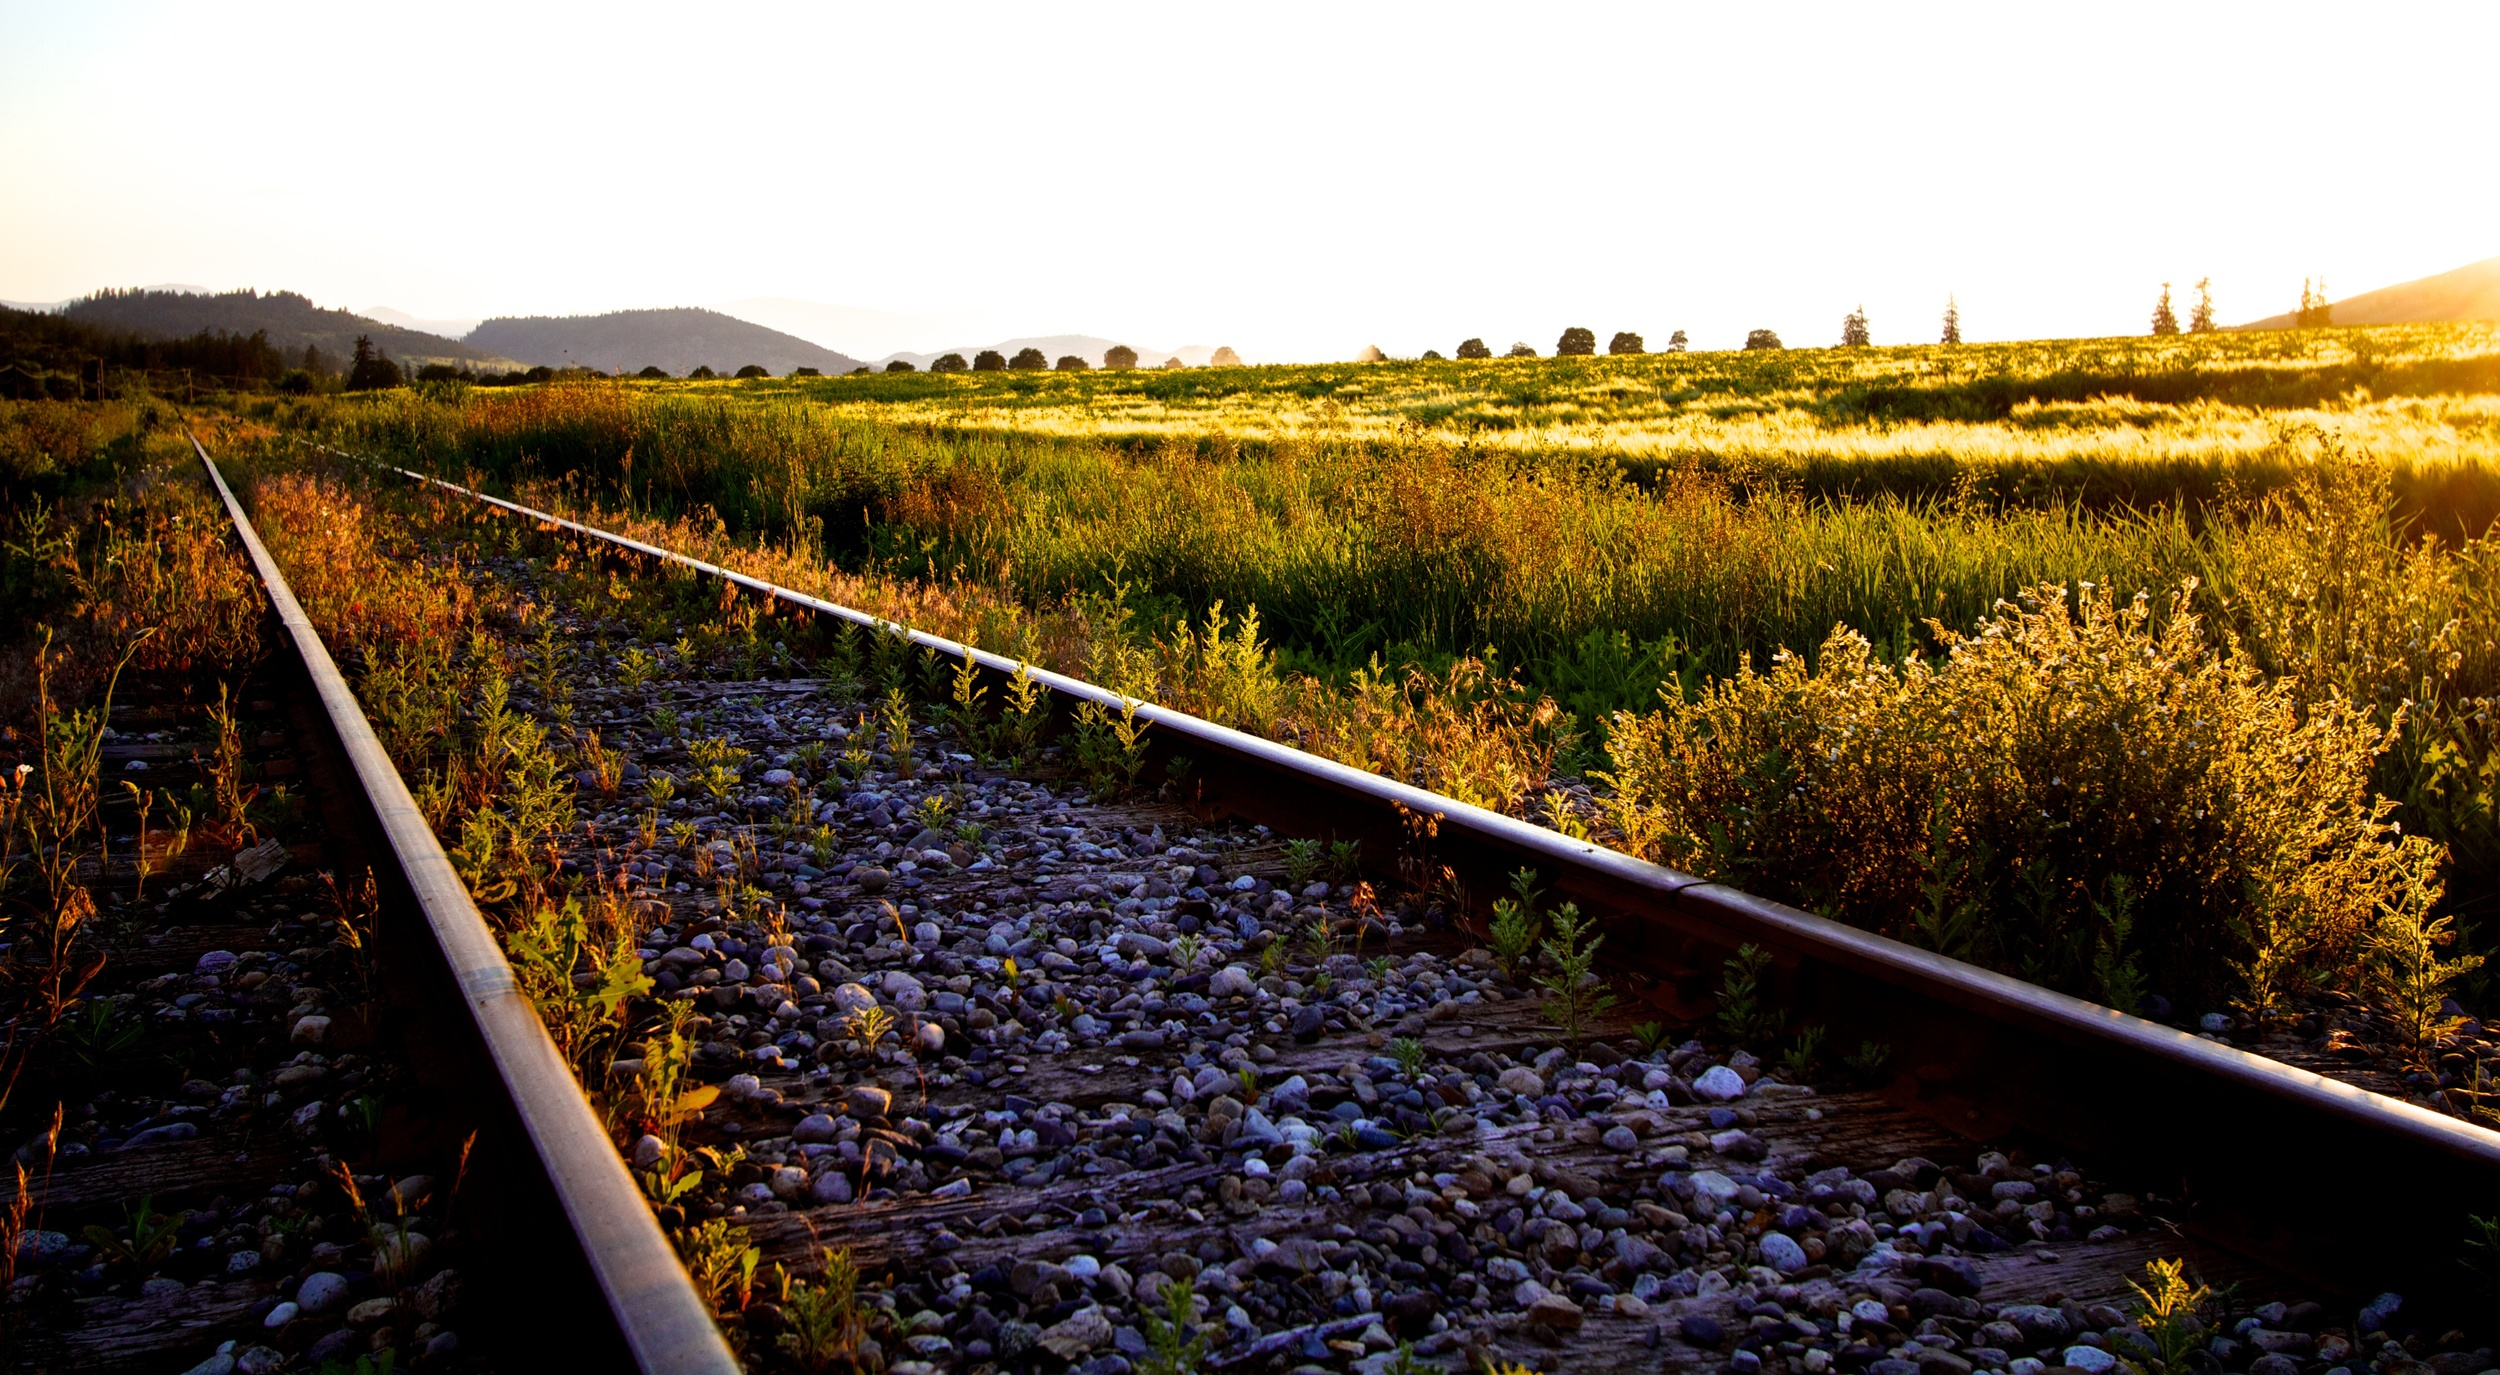 Train tracks over a purple bed of rocks push off into a yellow green sunset. Canon EOS 7D EF-S 10-22mm at 22mm f/5 1/200 ISO 200